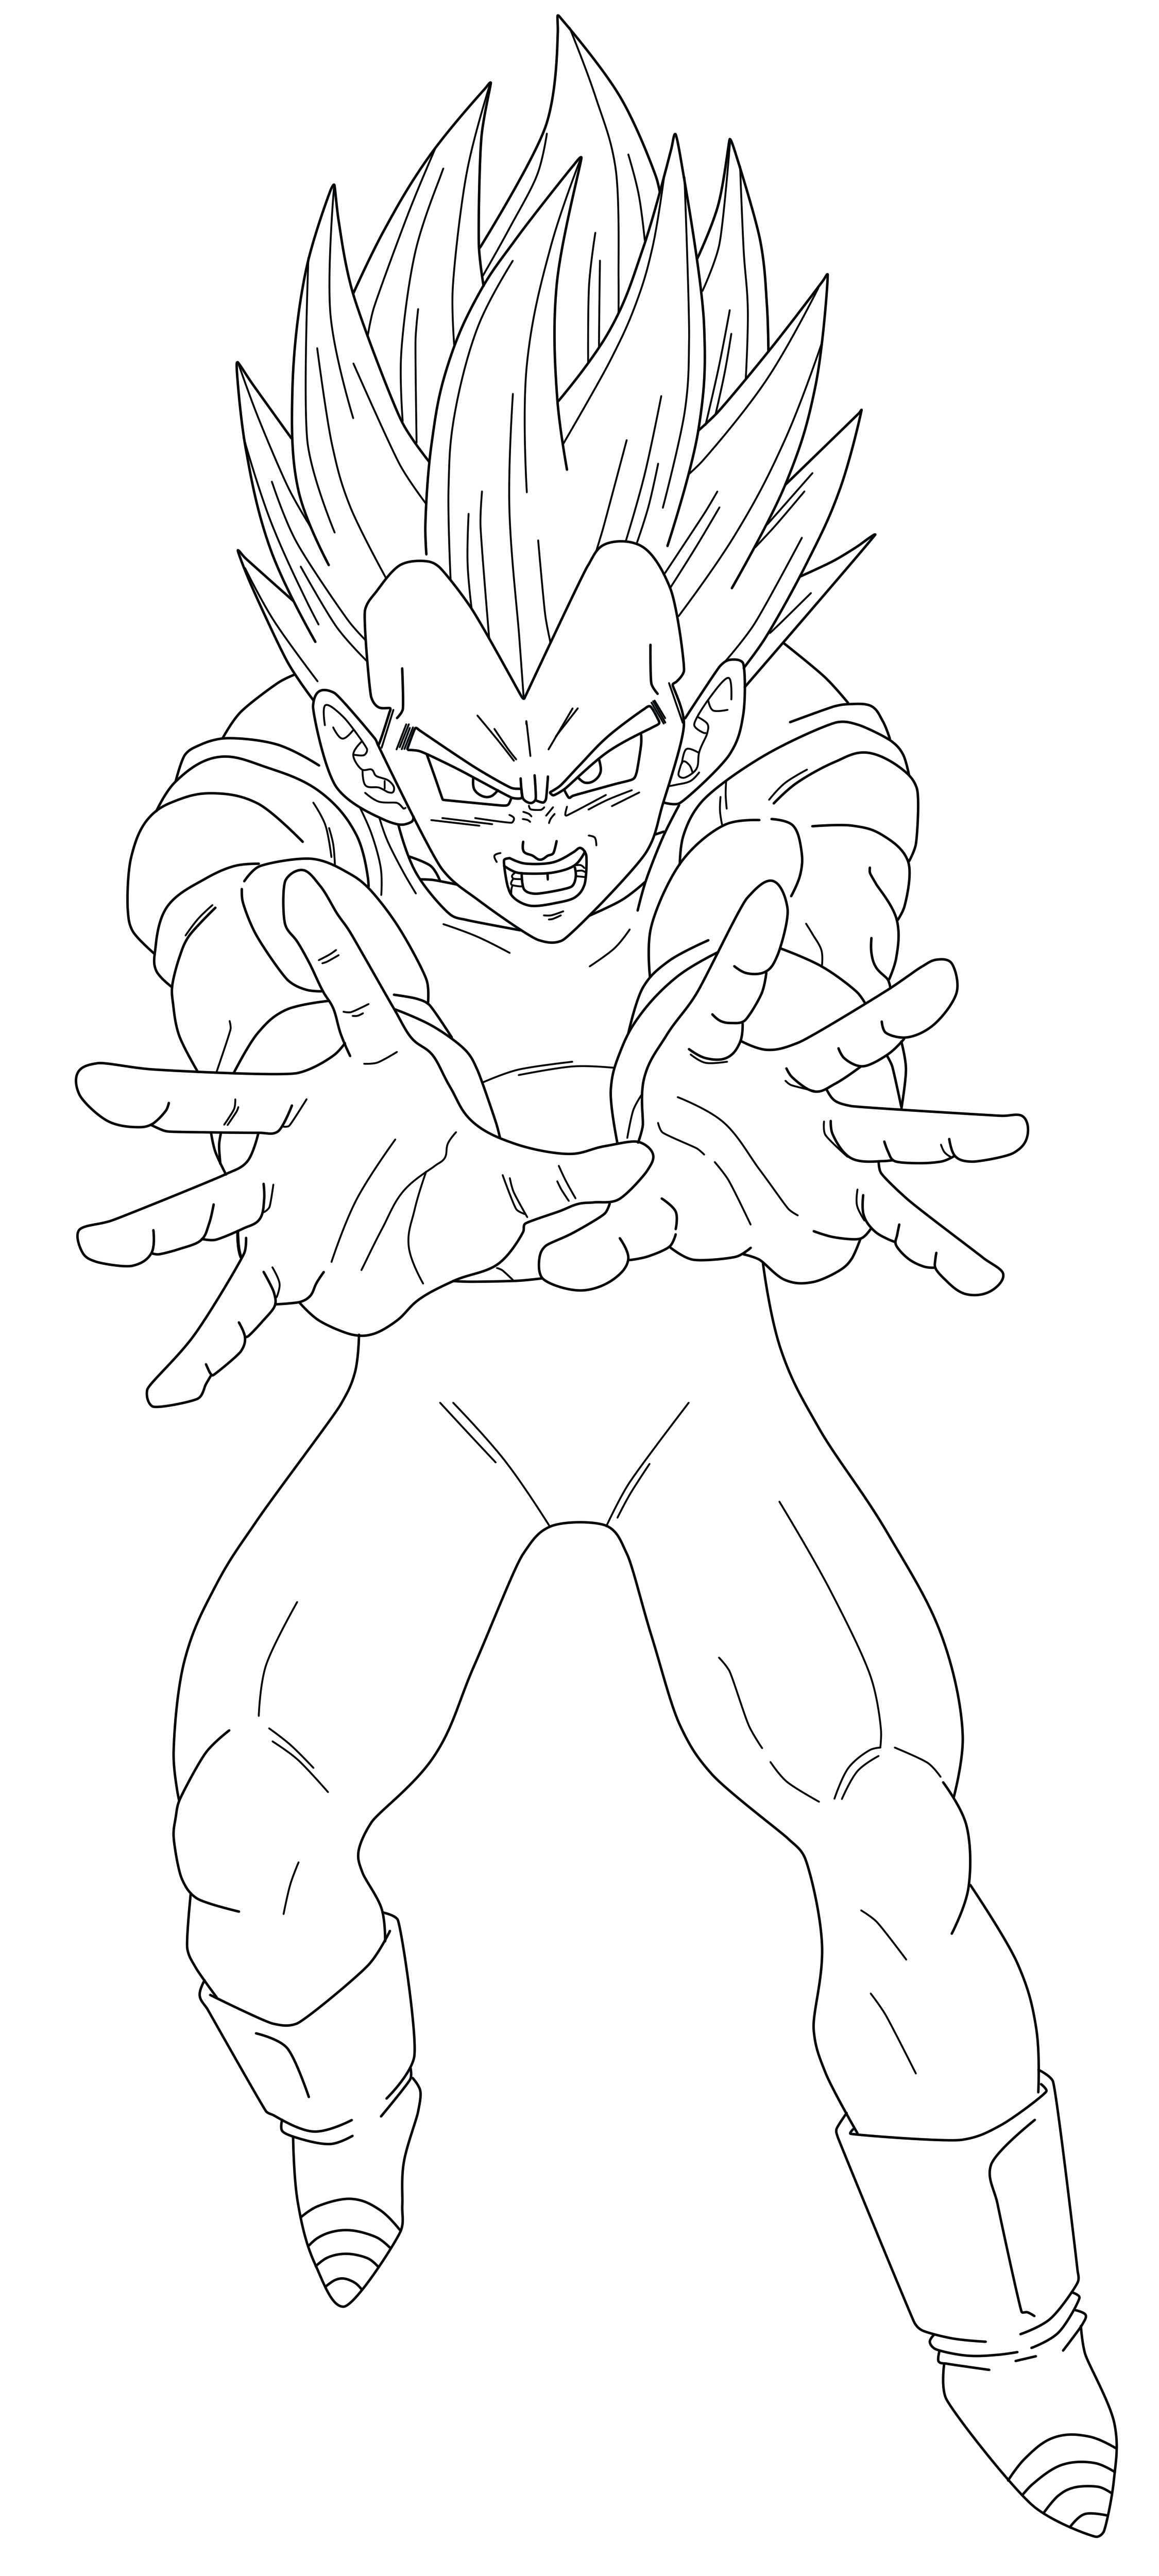 Ssj Drawing Saiyan Drawing Vegeta Ssj